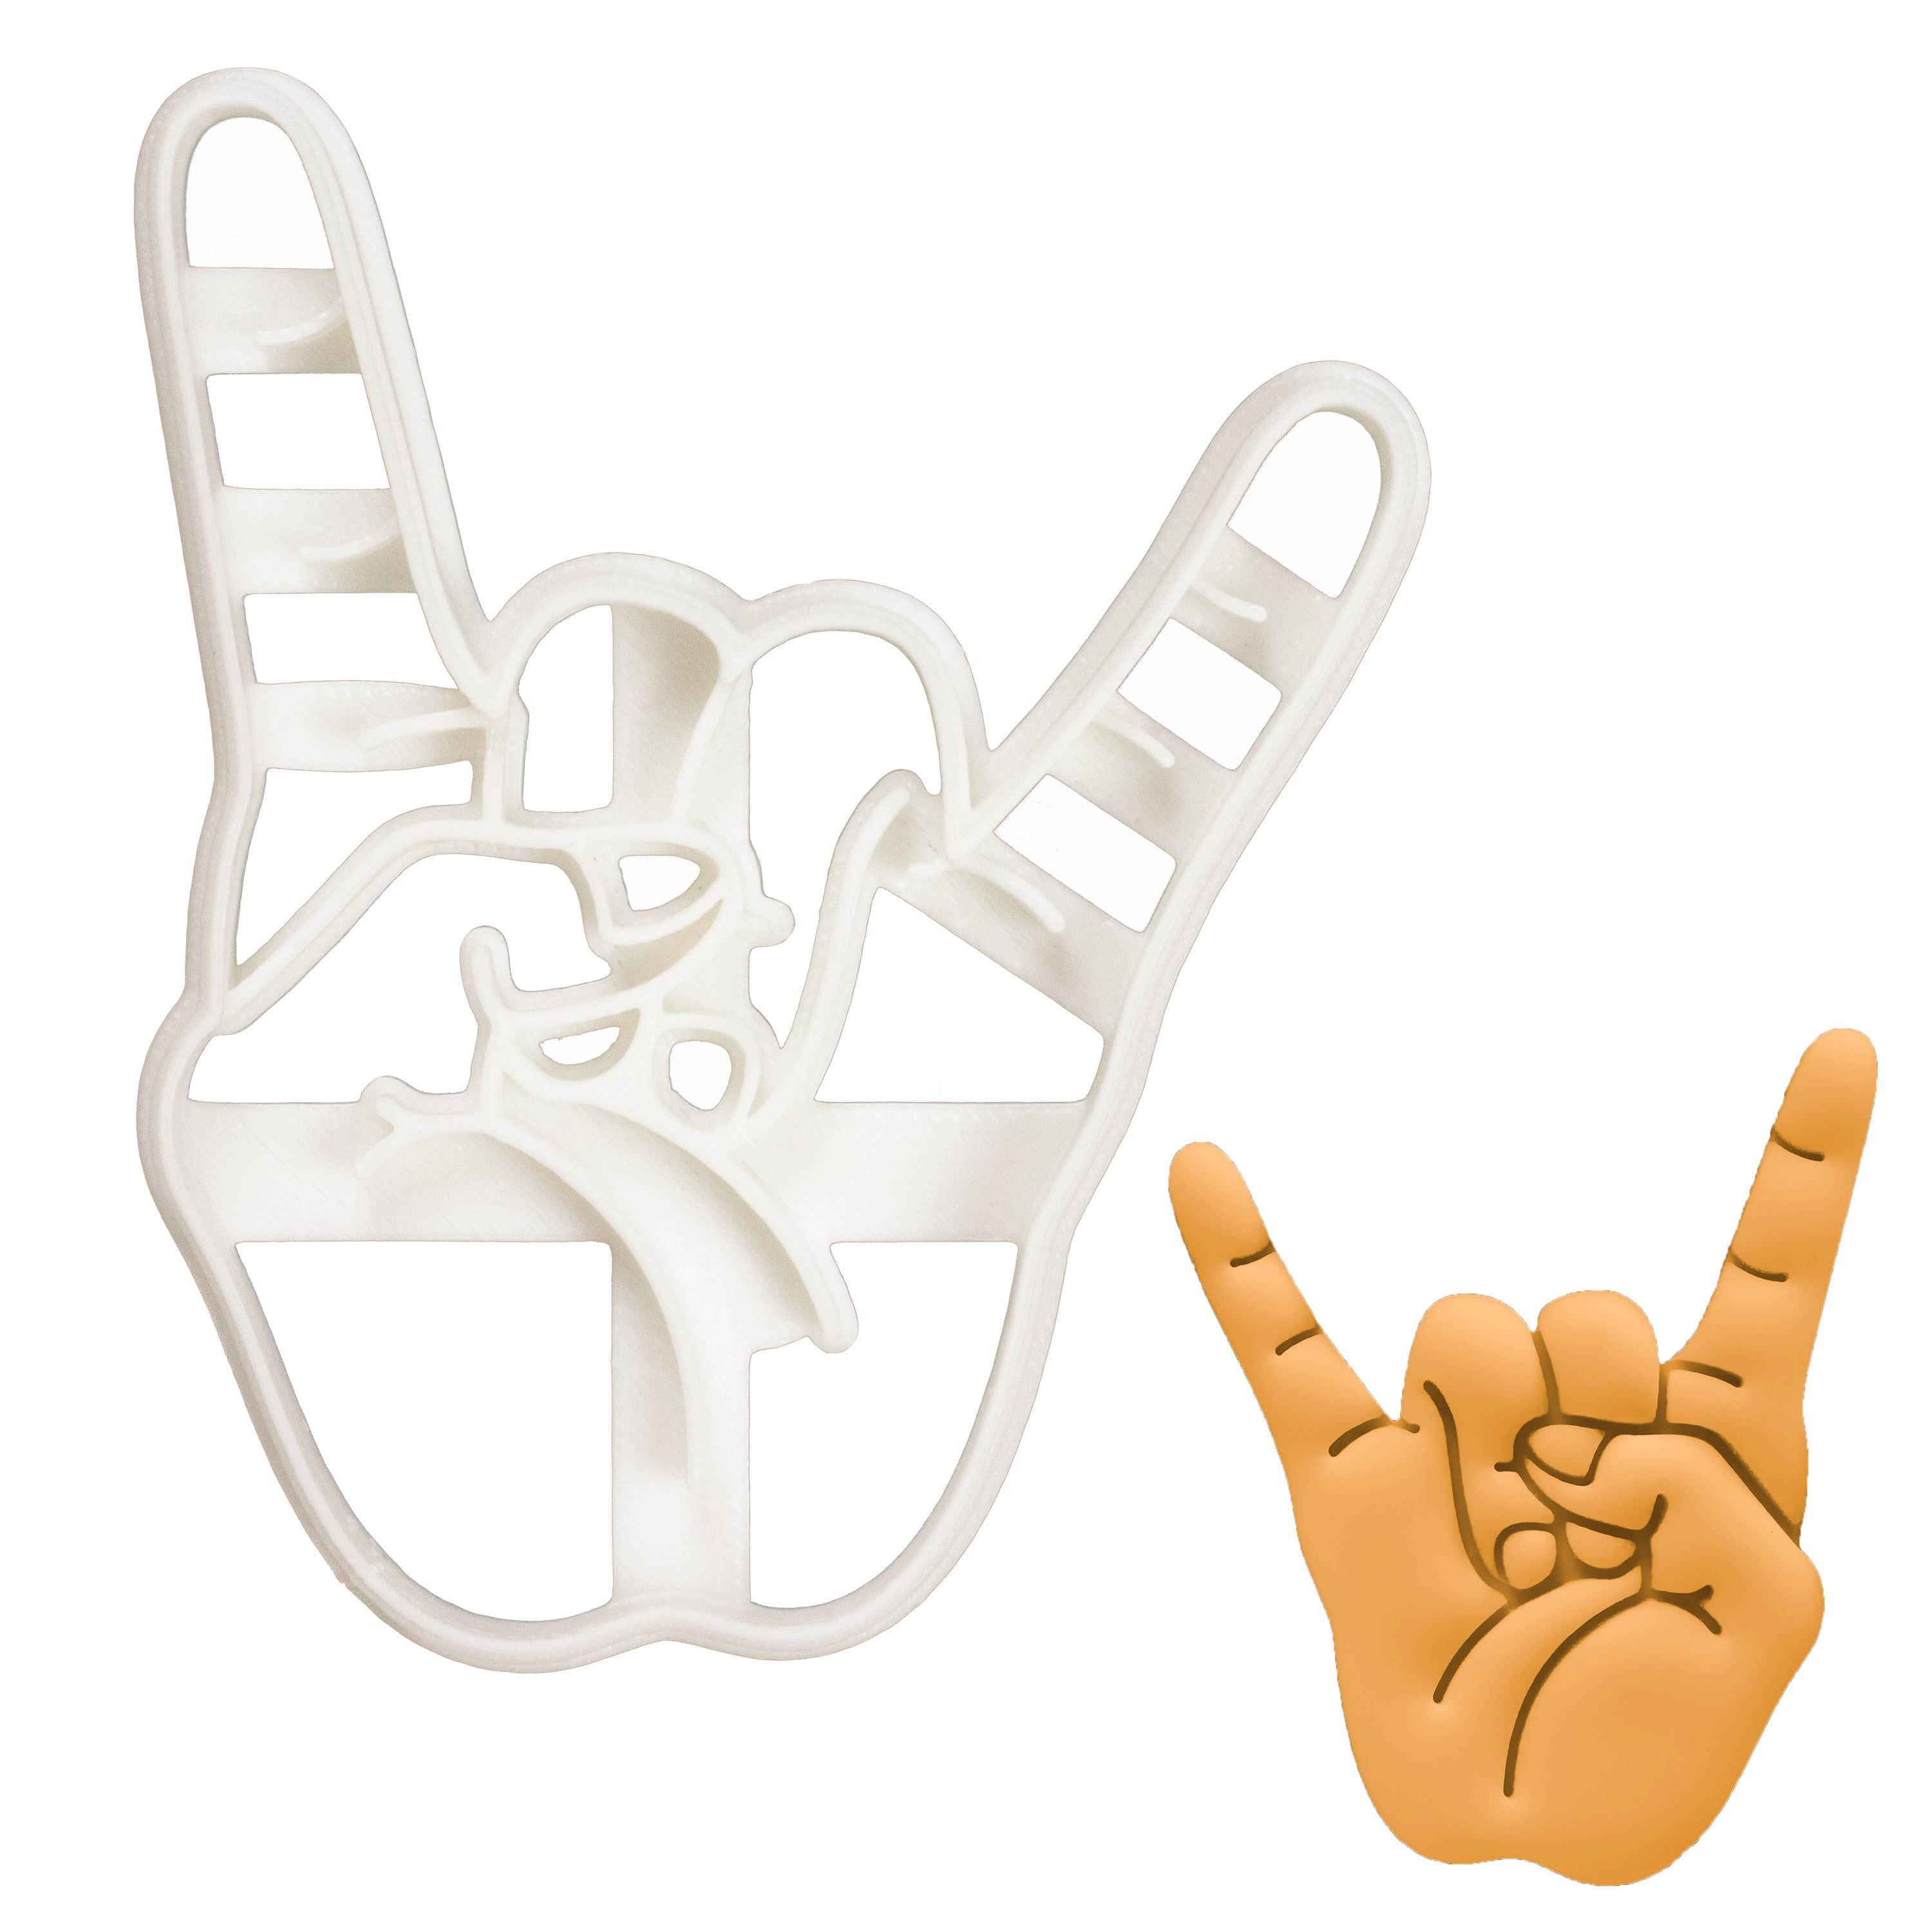 Rock Hand Sign of the Horns Cookie Cutter